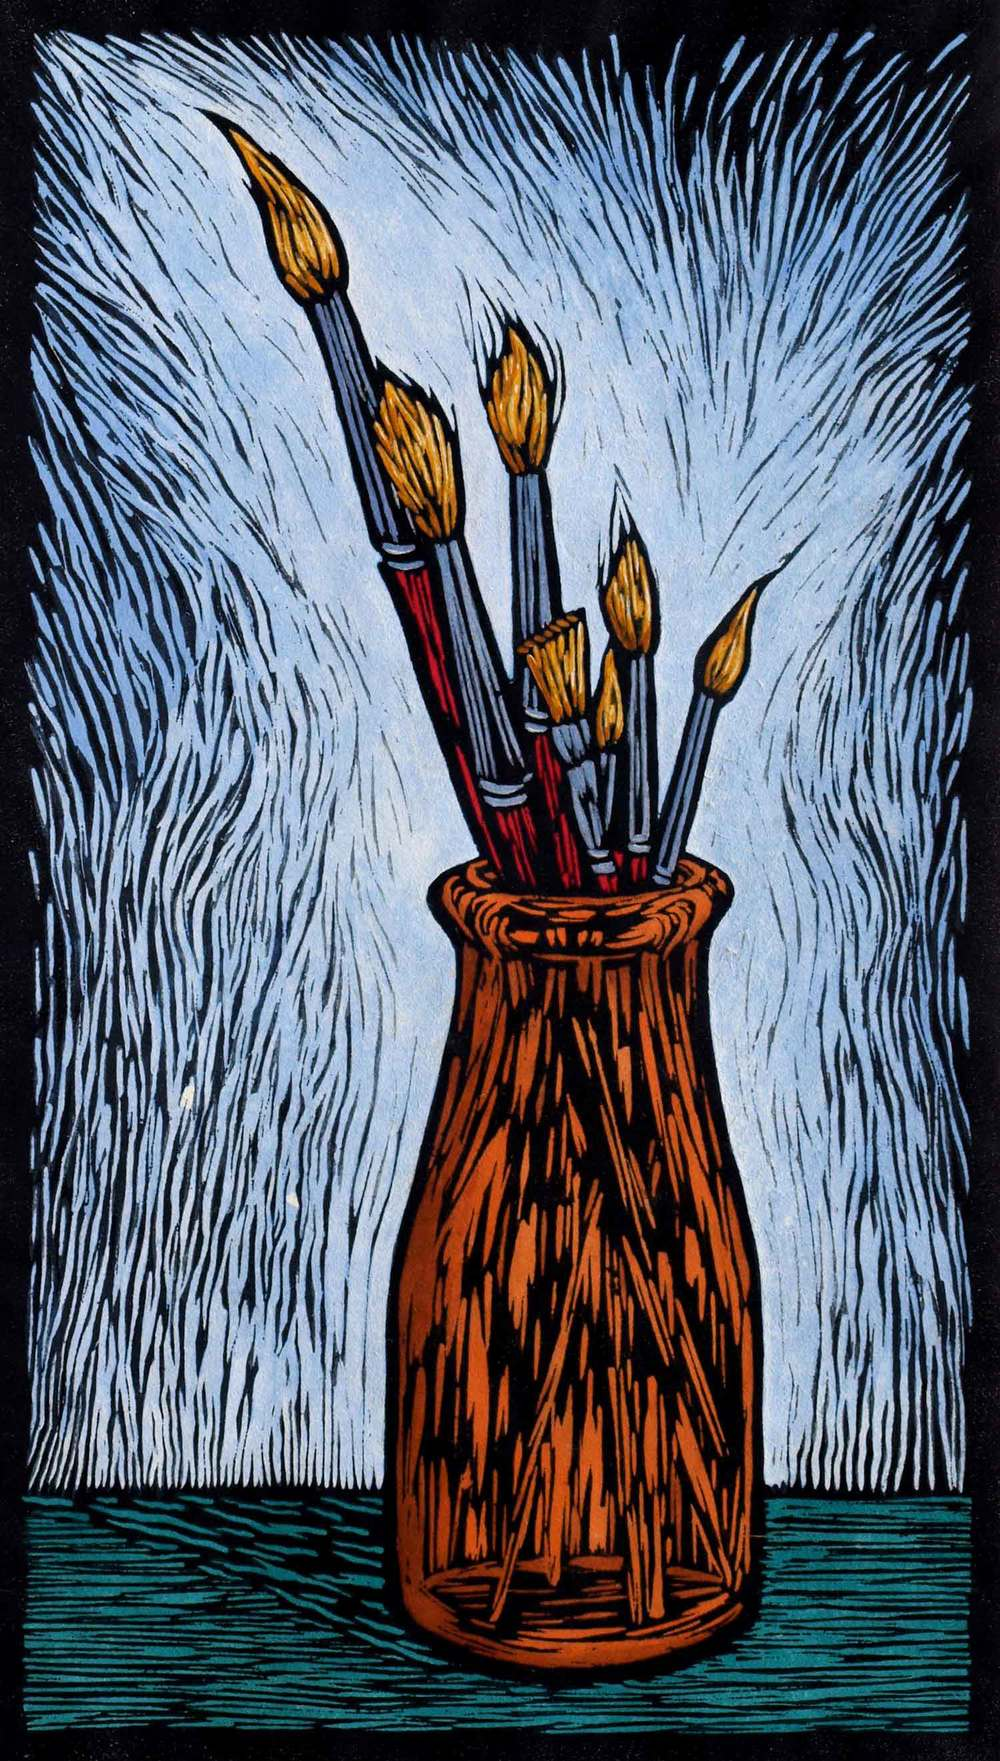 paint-brushes-linocut-rachel-newling.jpg